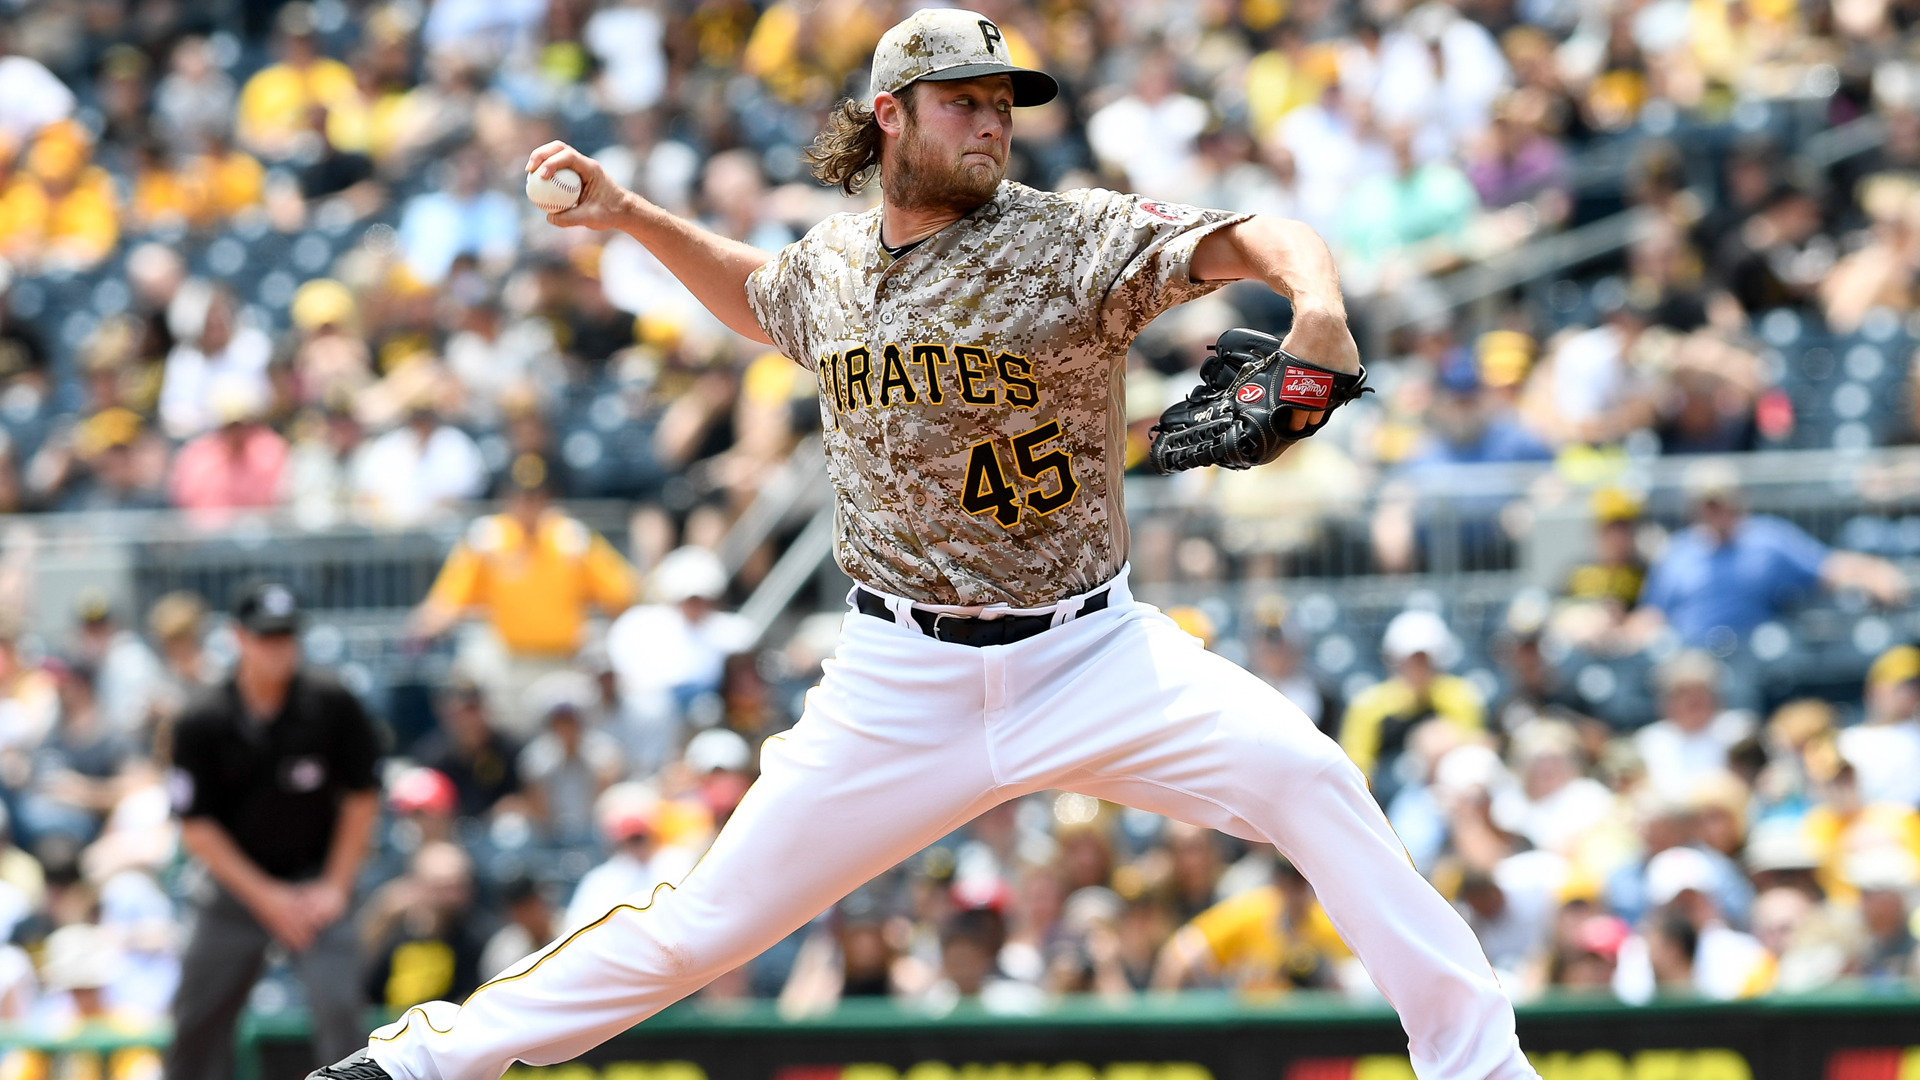 Pirates Agree To Trade Gerrit Cole To Astros